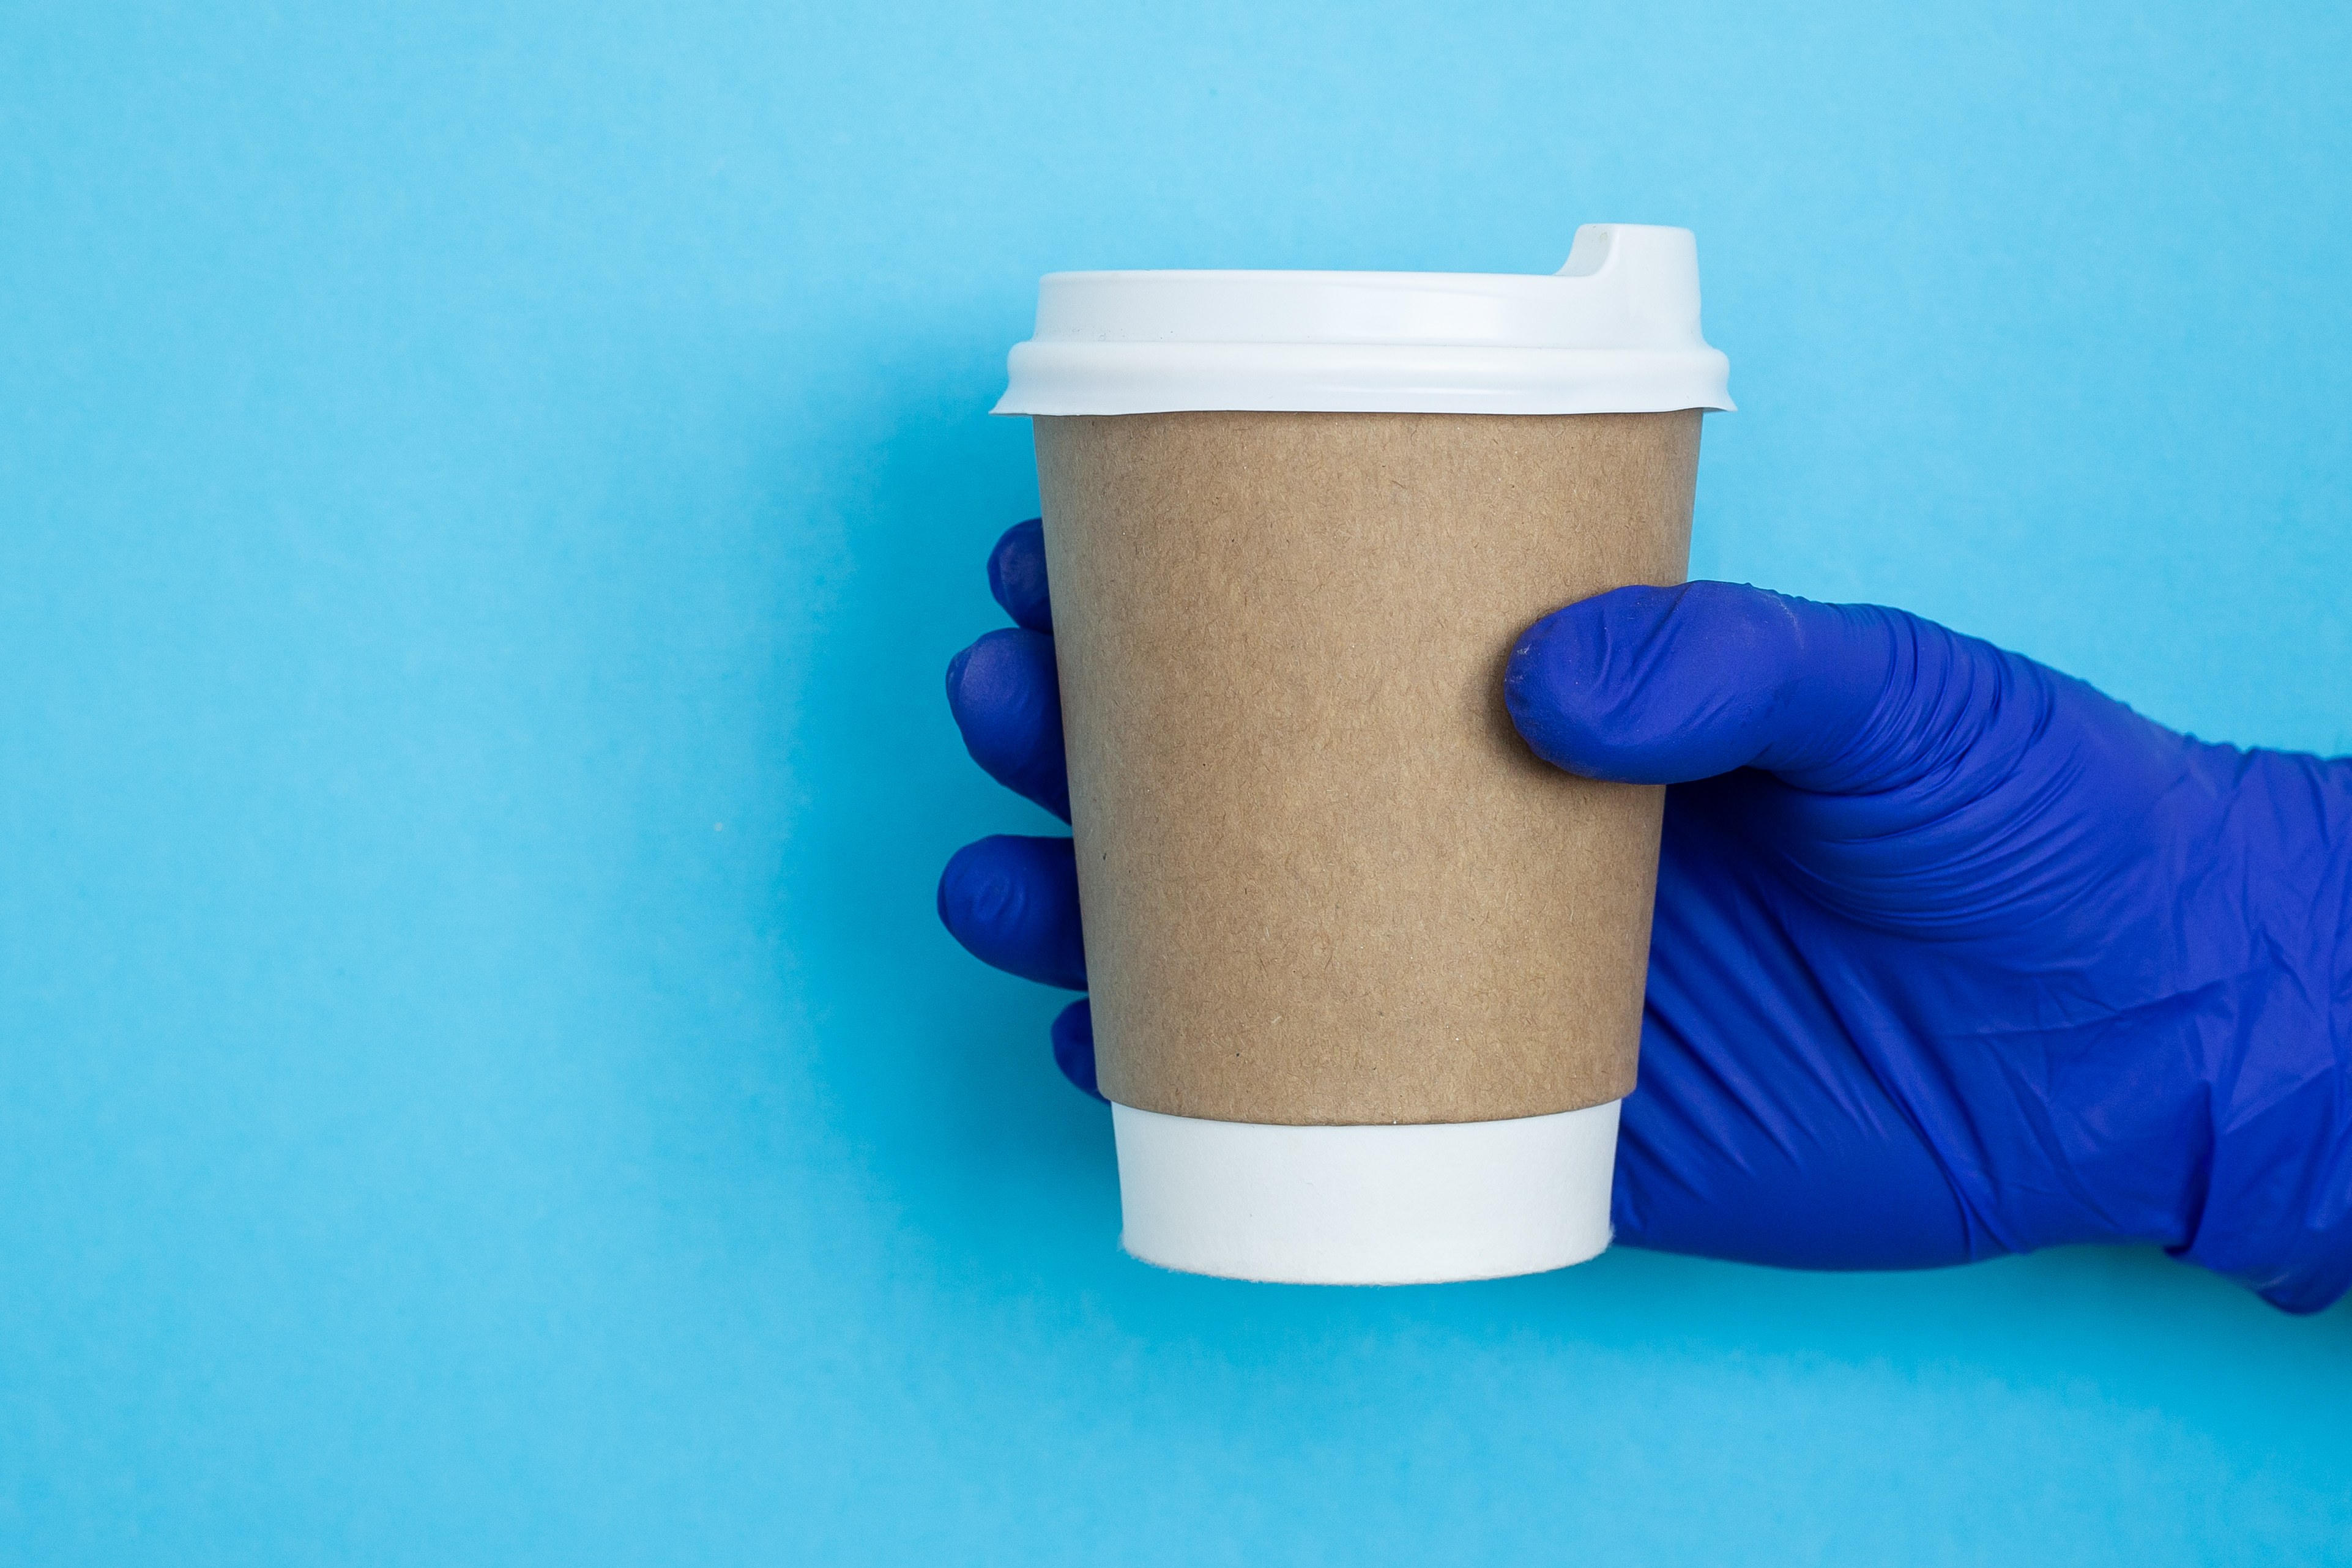 A gloved hand holding a paper cup of coffee